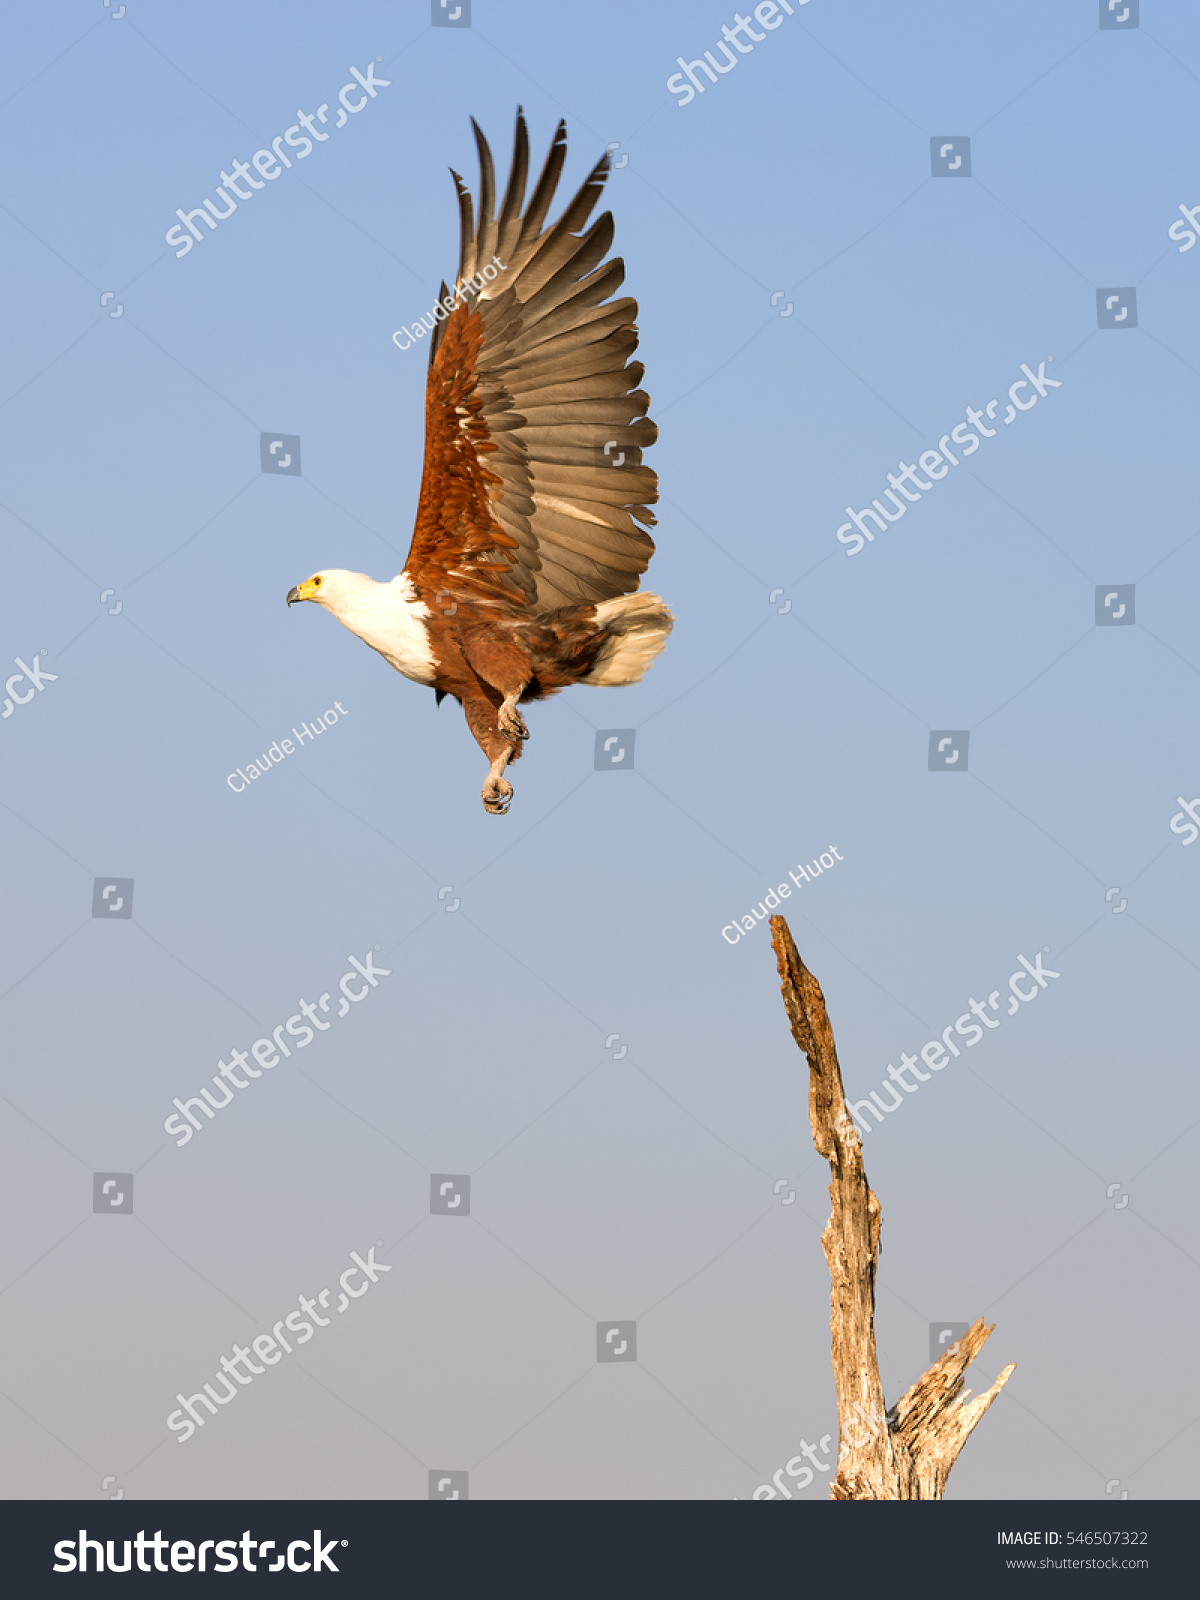 An African fish eagle (Haliaeetus vocifer) takes off from a dead tree on the Chobe river between Namibia and Botswana